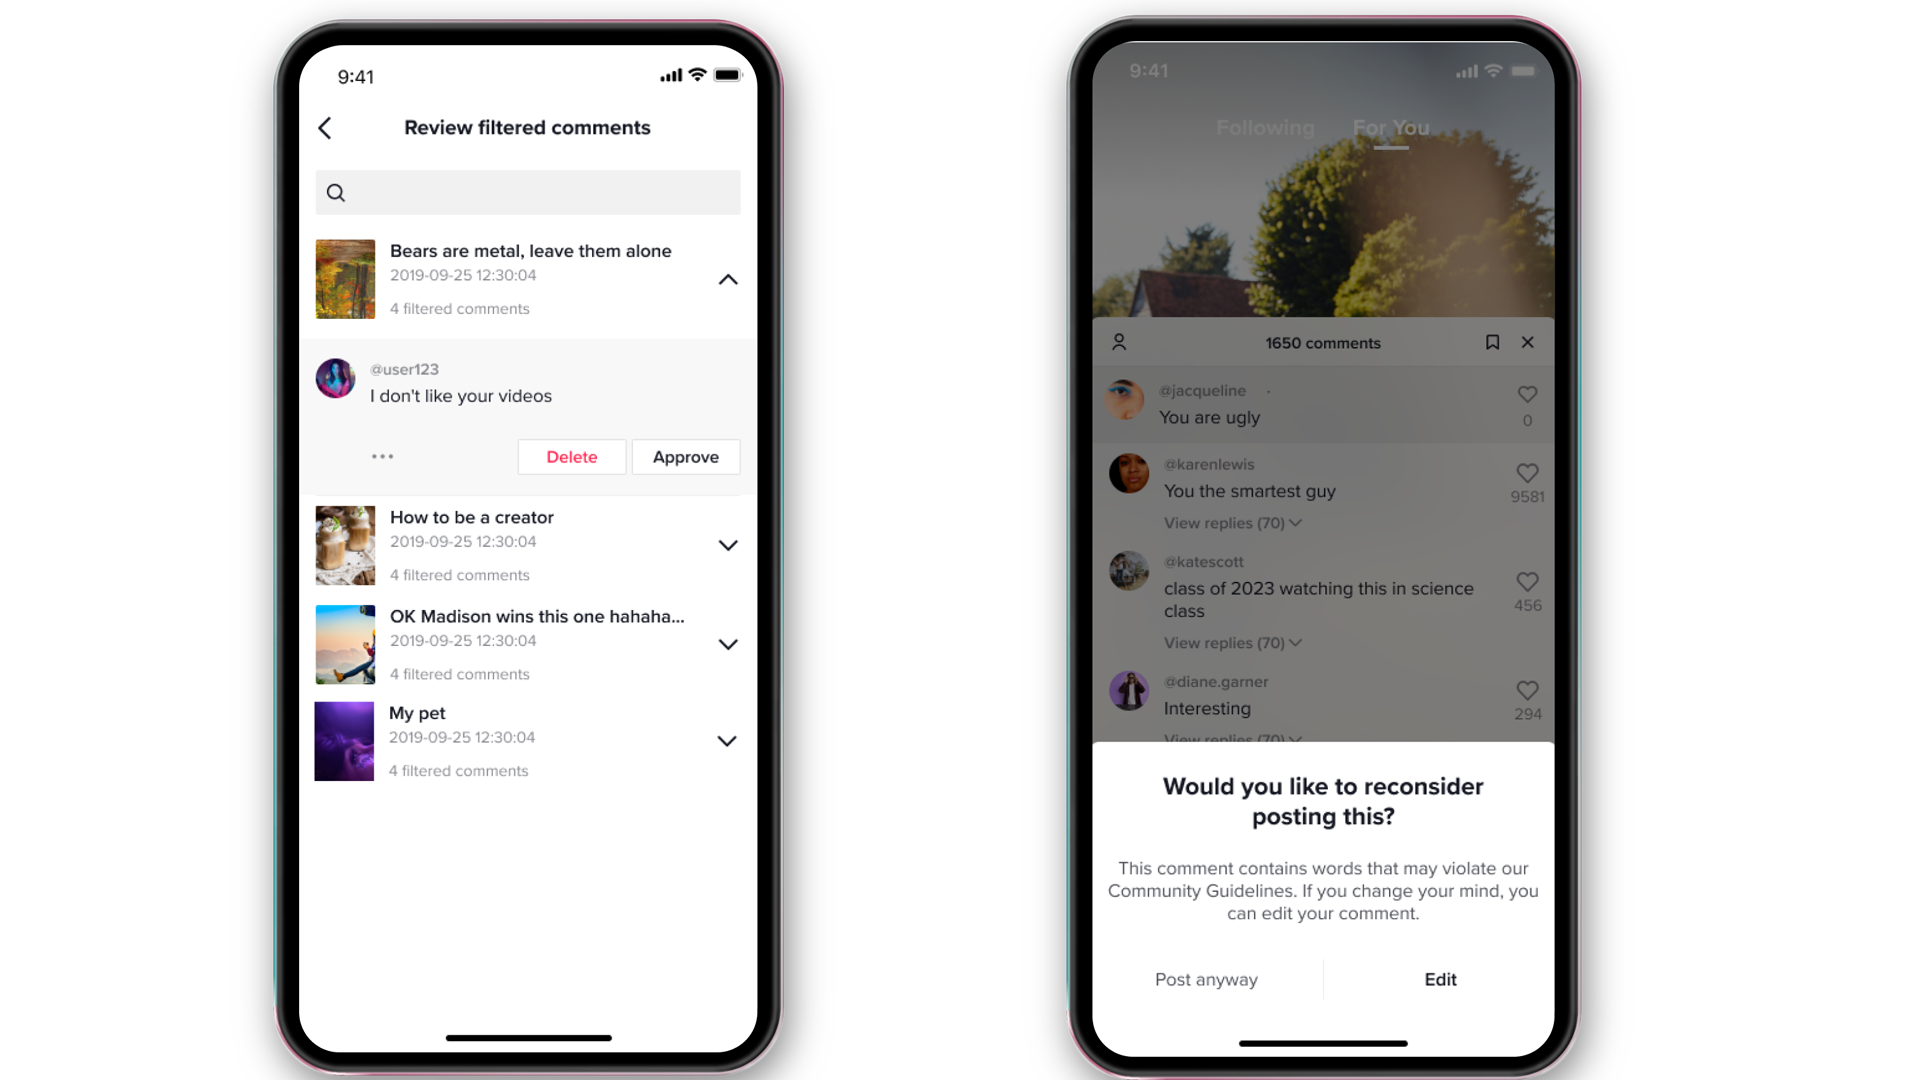 TikTok's new anti-bullying features give users more control of their comments.